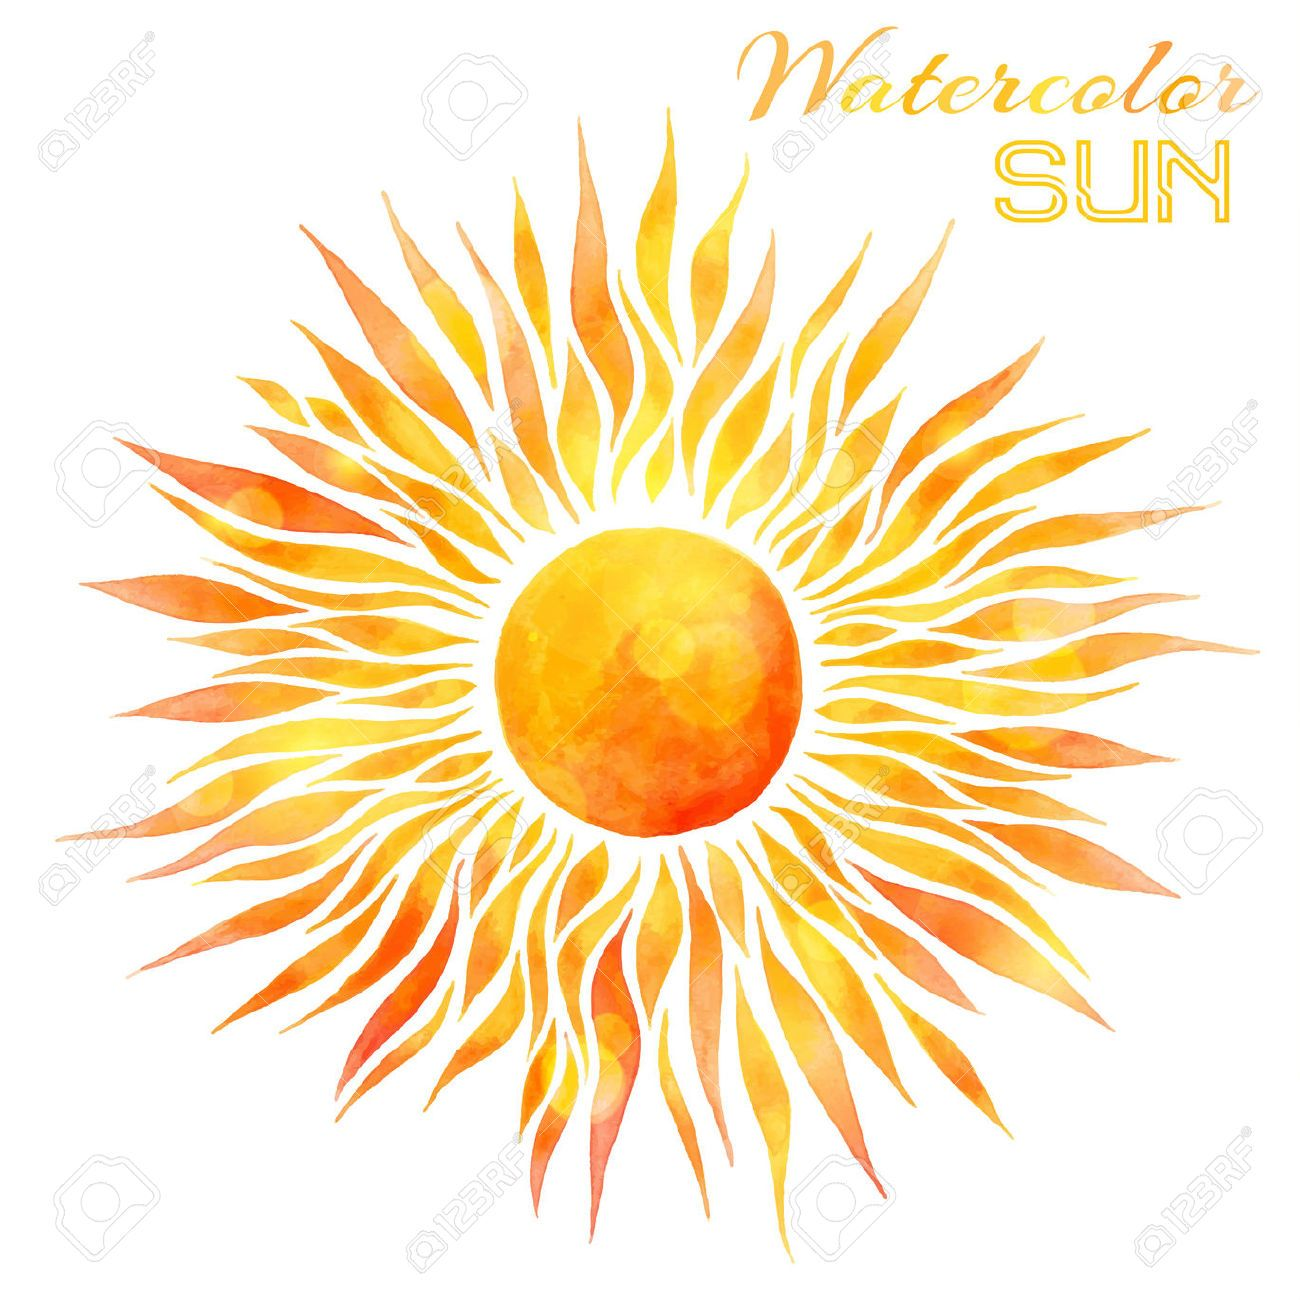 Line Drawing Sun Vector : Watercolor sun vector illustration hand drawn